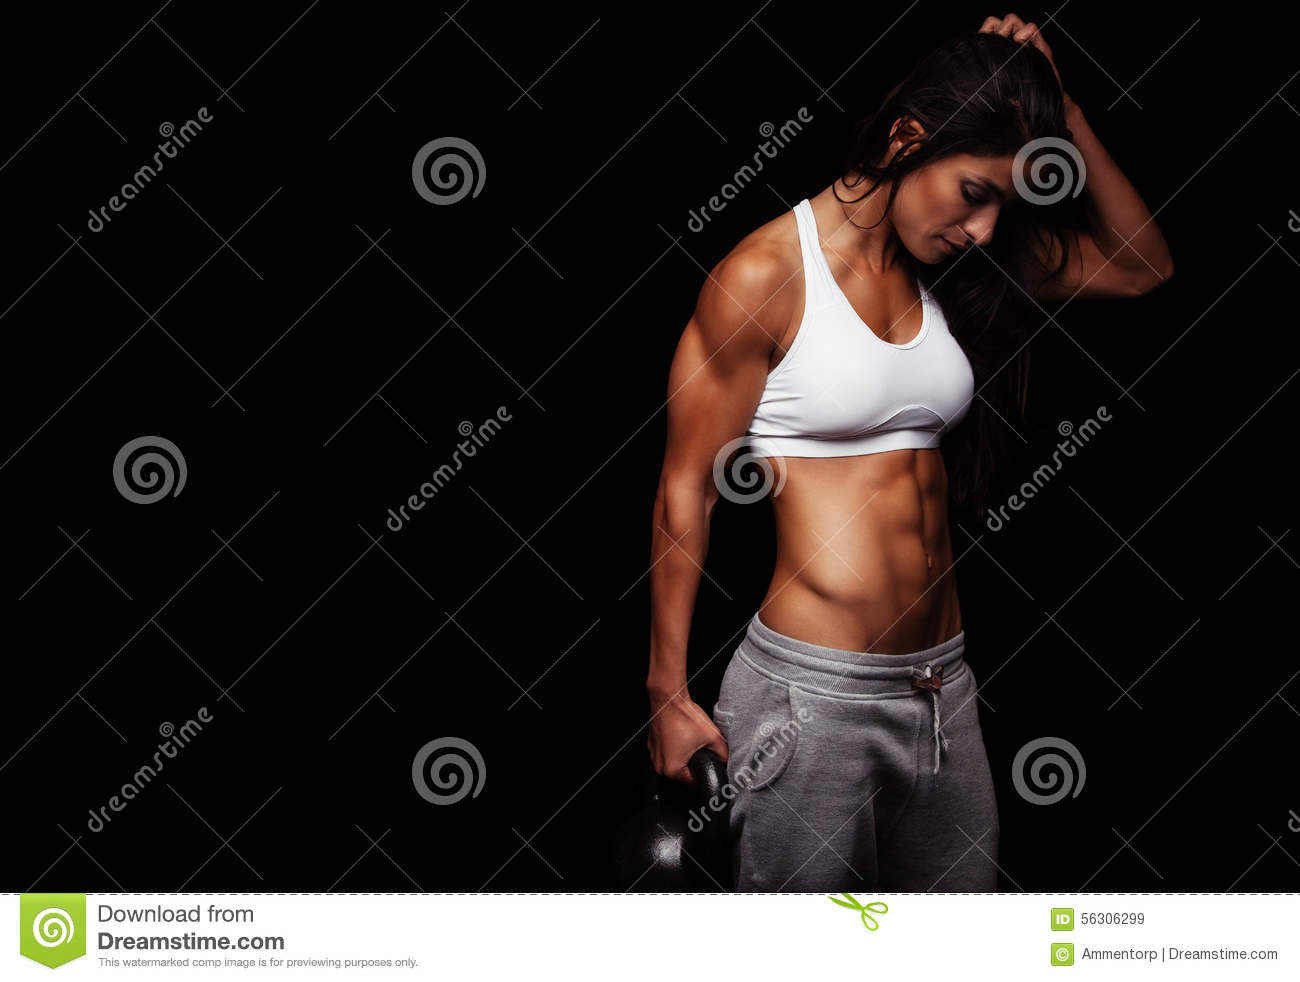 Fitness Woman Holding Heavy Kettle Bell Stock Image Image Of Lifestyle Isolated 56306299 Get the best deals on dark fitted jeans and save up to 70% off at poshmark now! dreamstime com